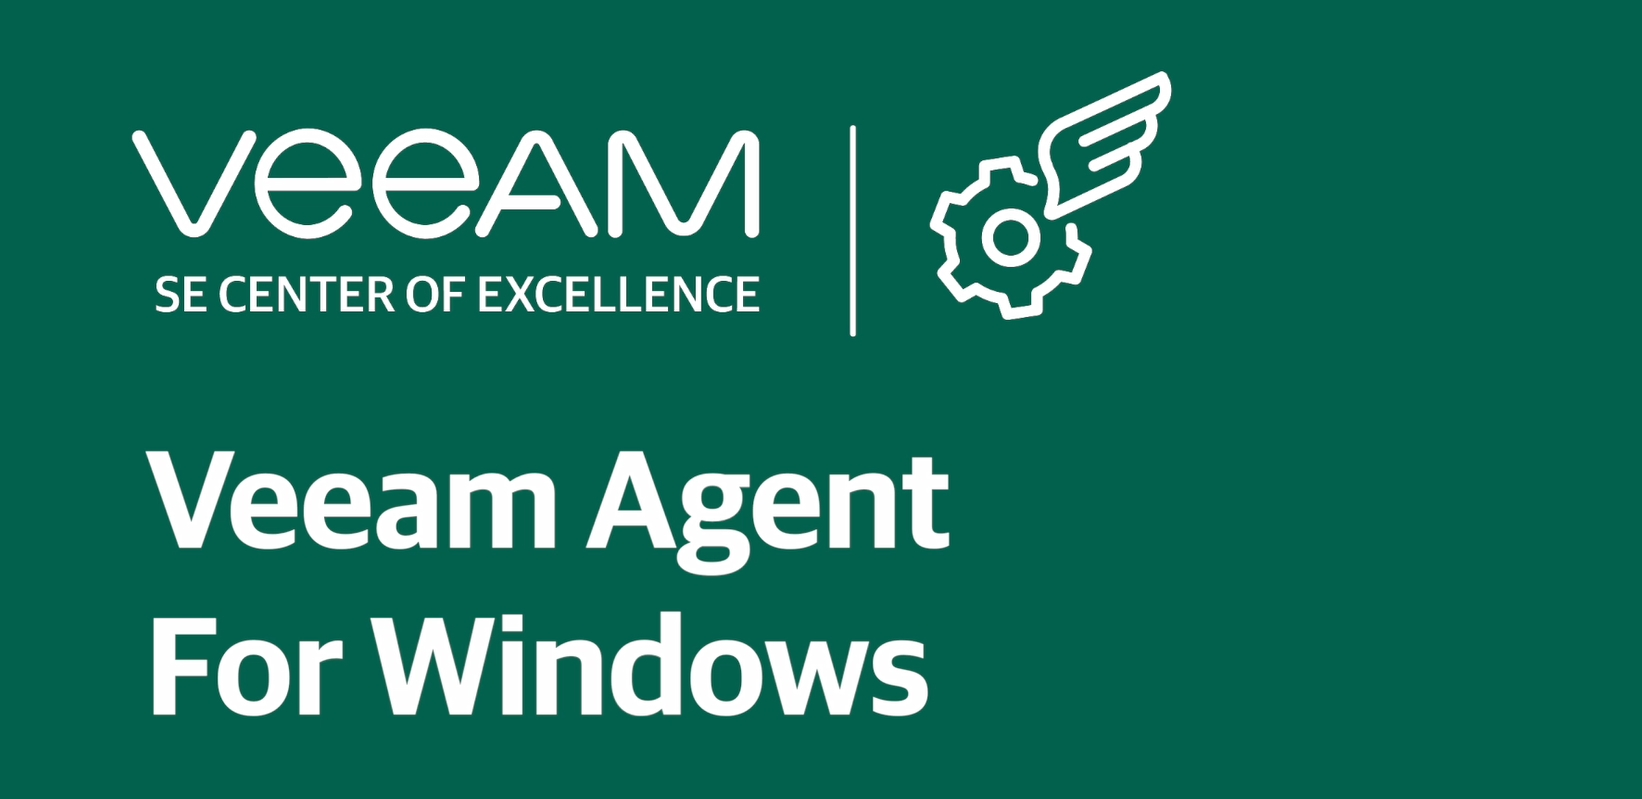 How to organize, automate and deploy Veeam Agent for Microsoft Windows